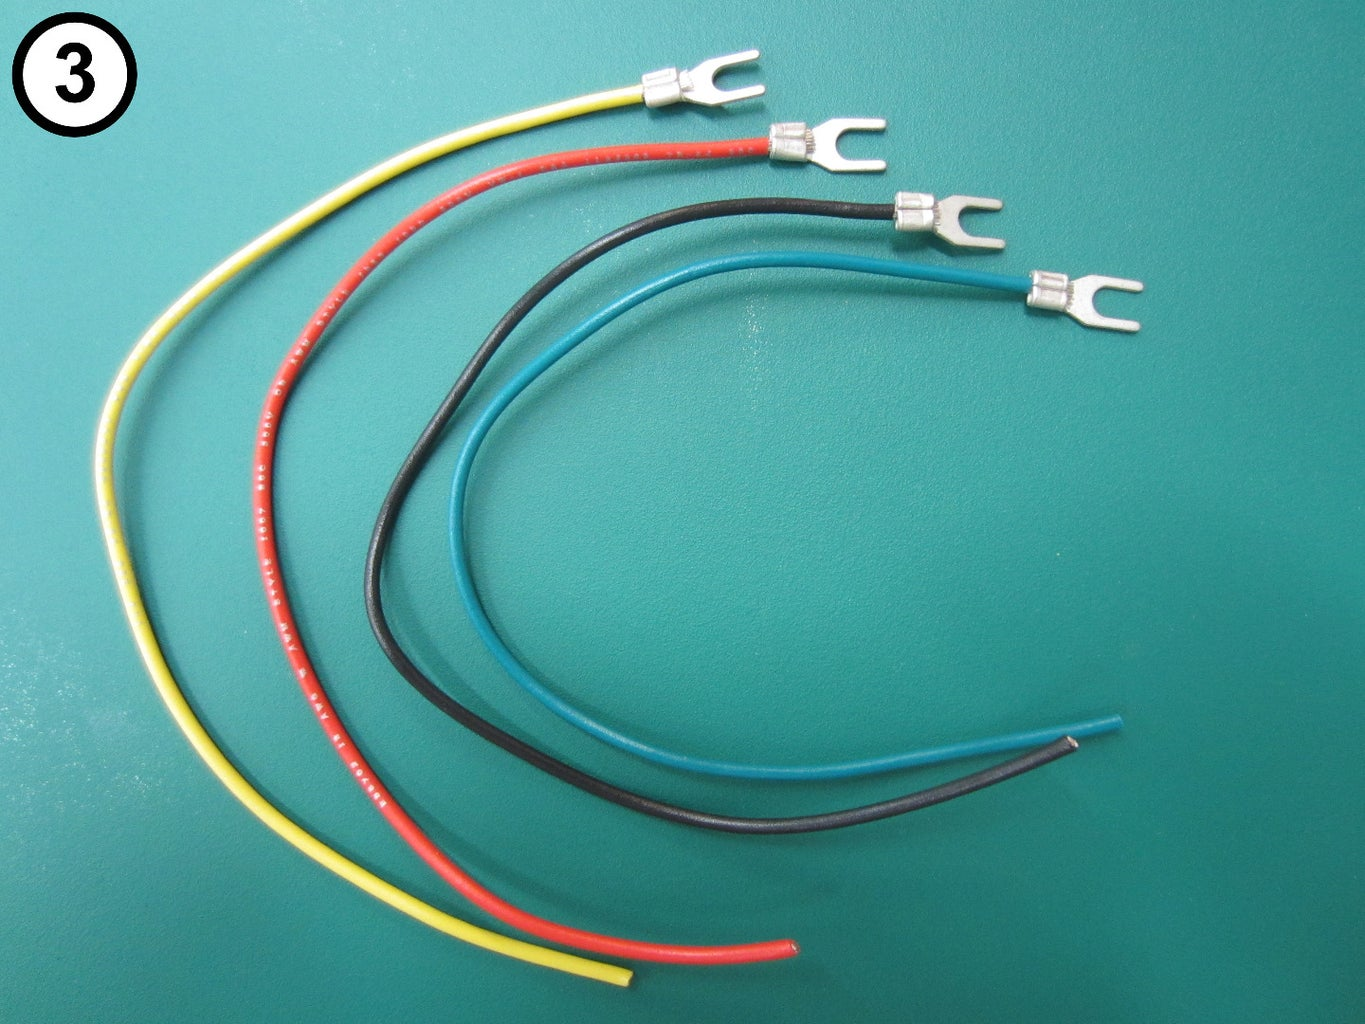 Prepare Wires for Connecting to the Tower Lamp Barrier Strip